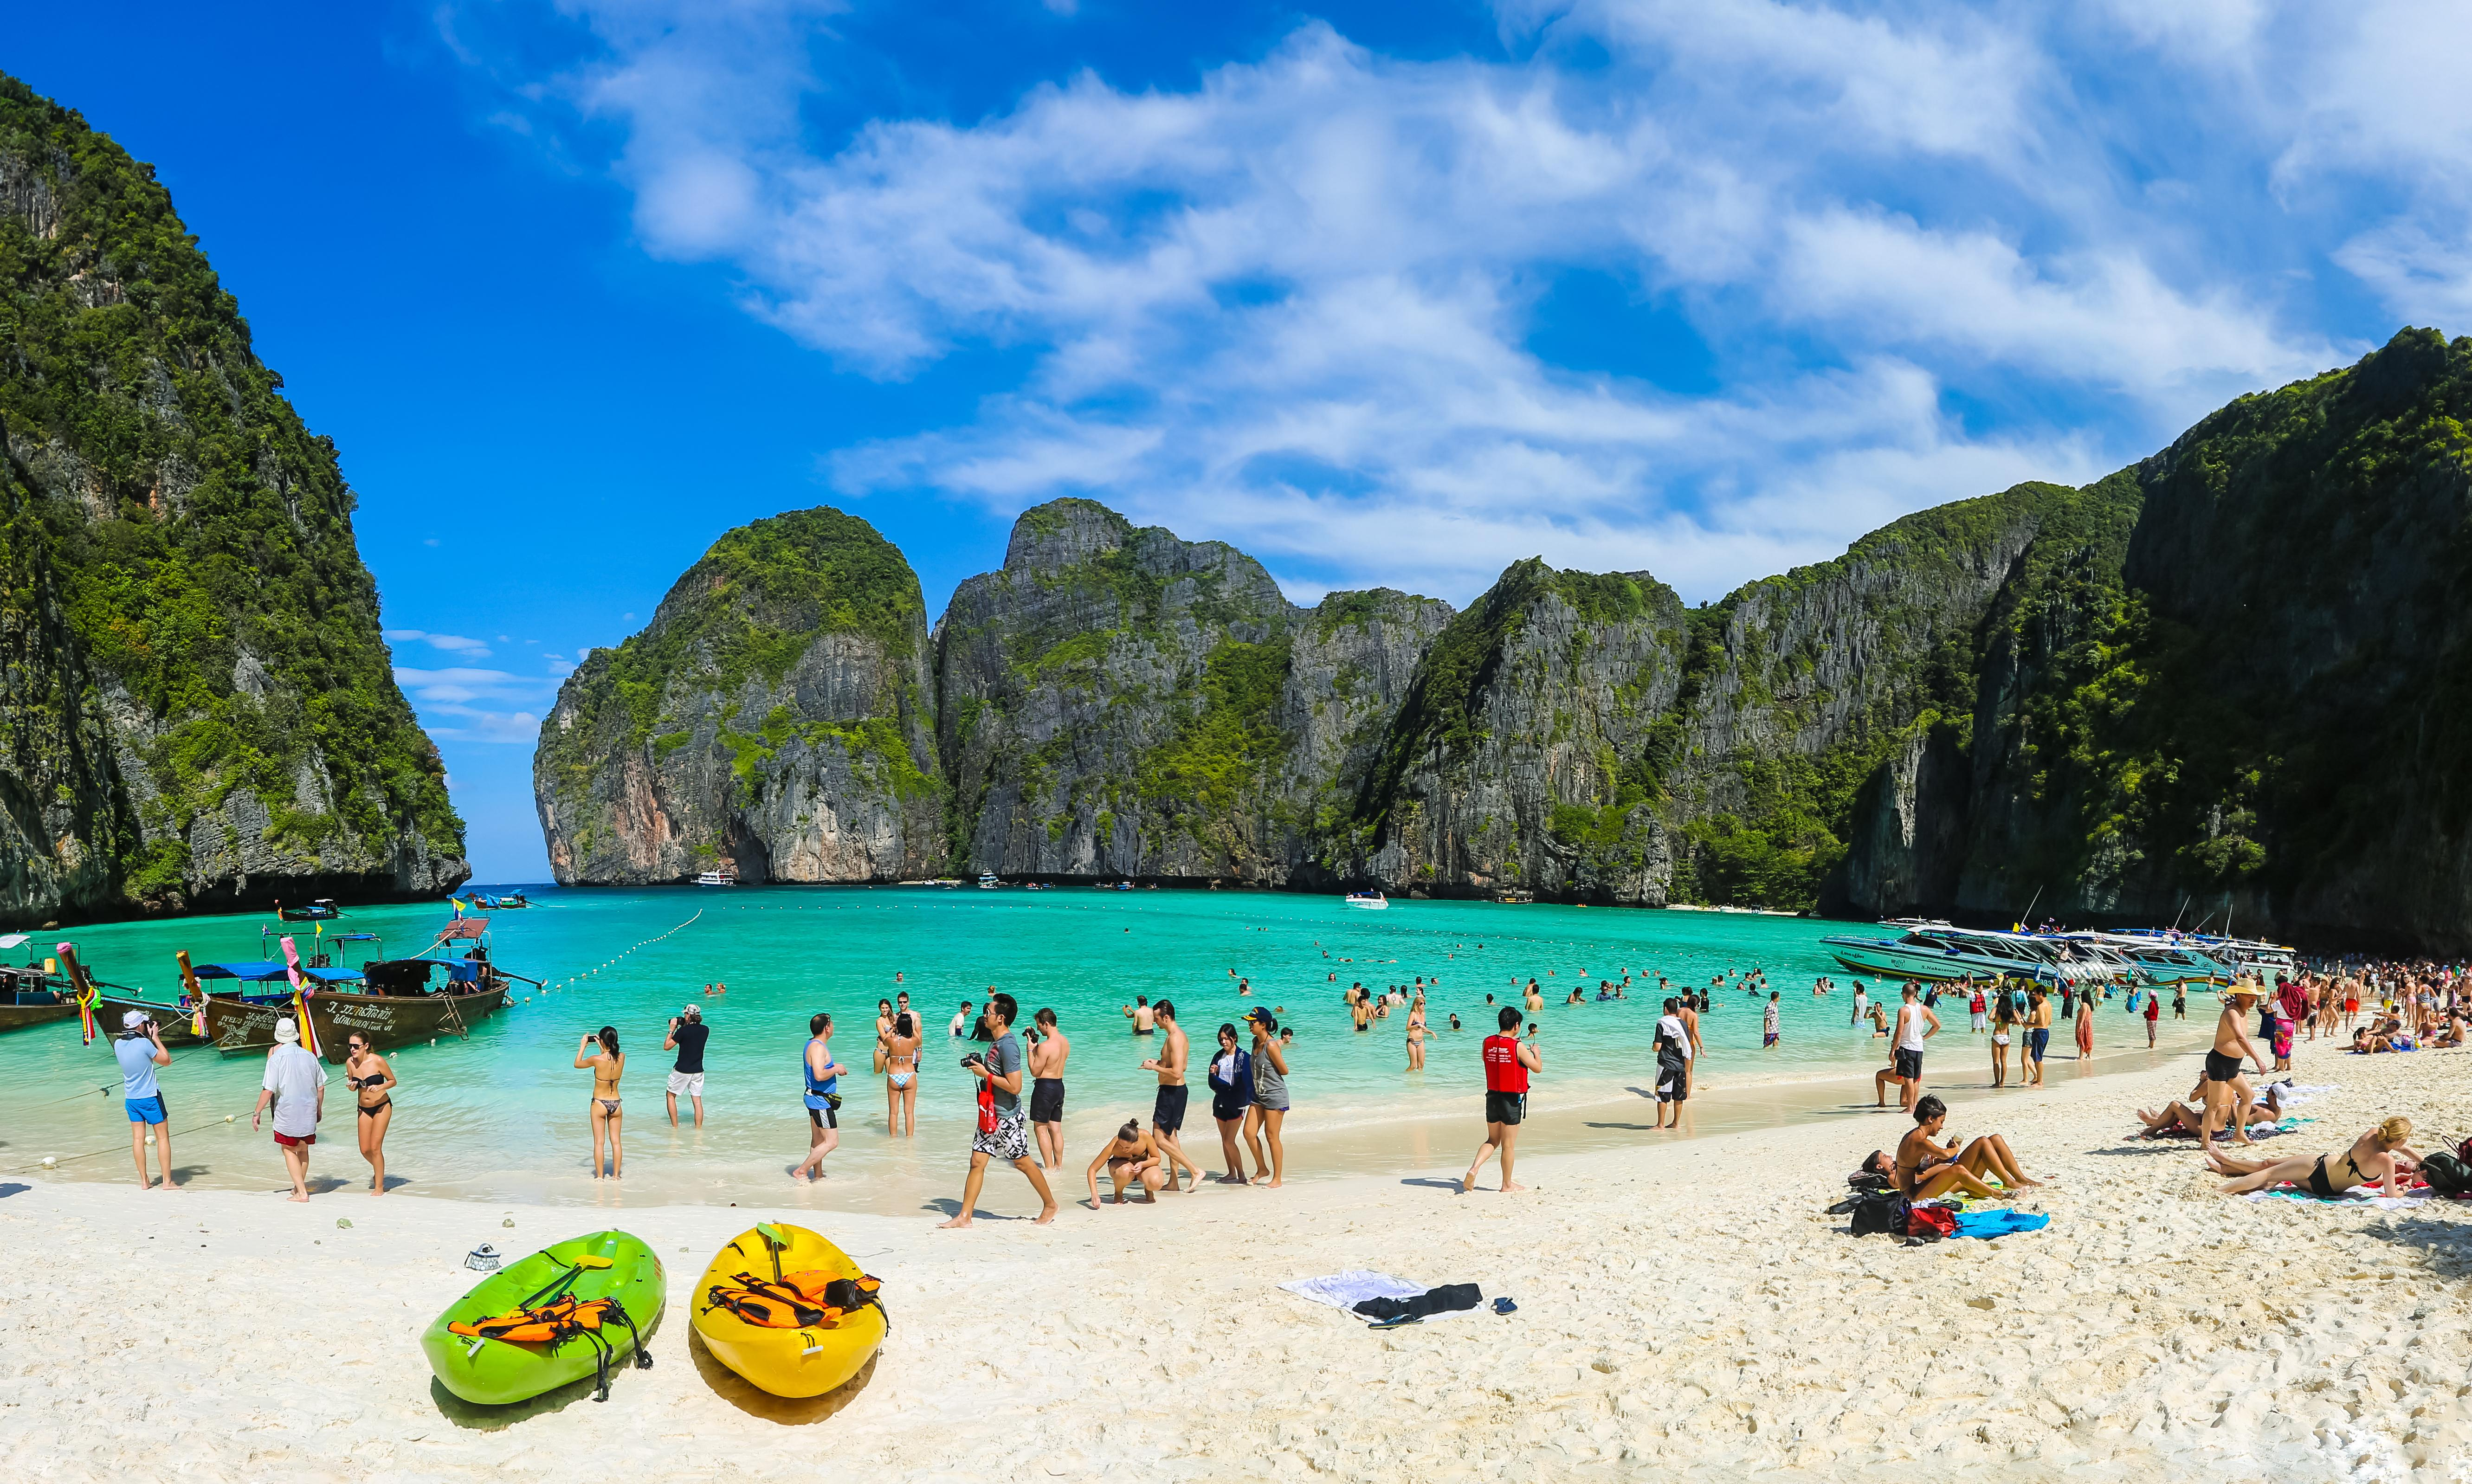 Thailand's Maya Bay, location for The Beach, to close to tourists